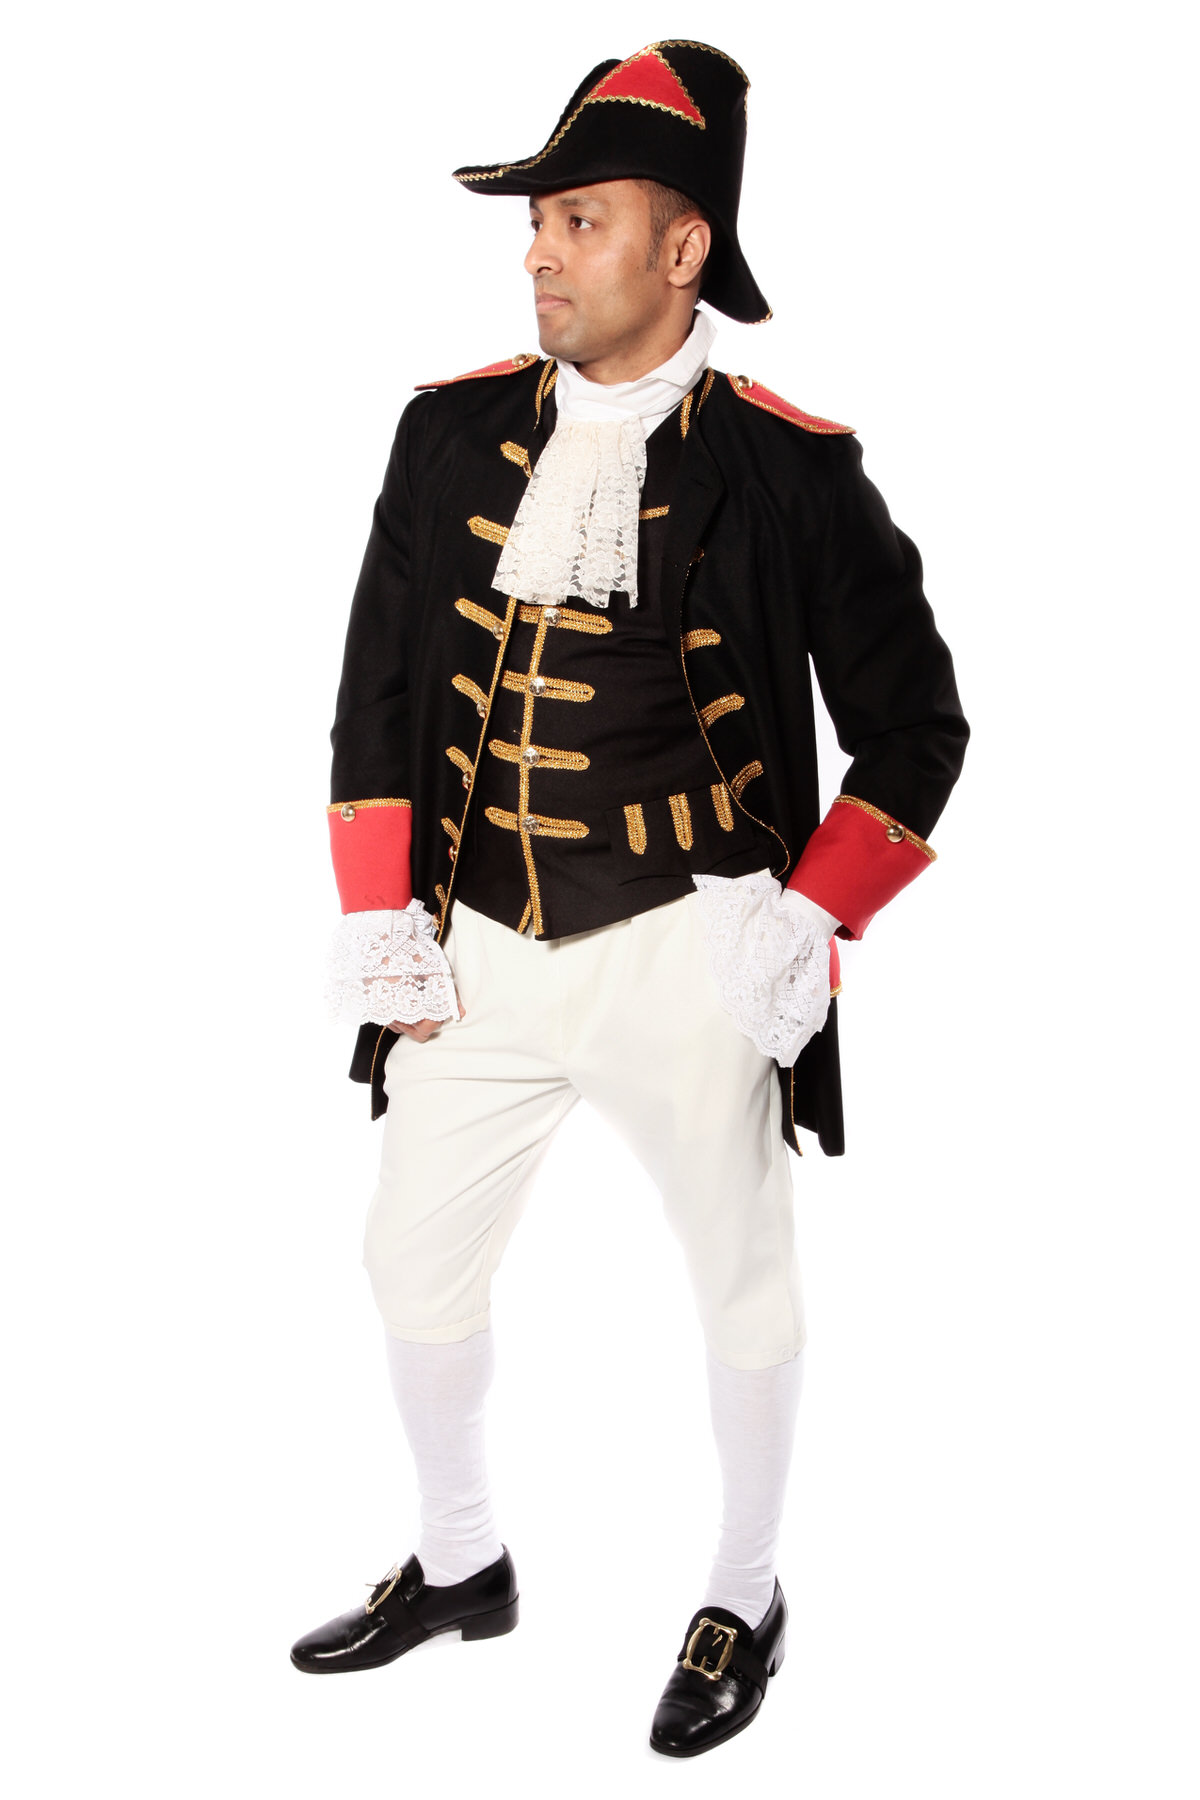 BLACK GOLD AND RED NAPOLEONIC STYLE COSTUME